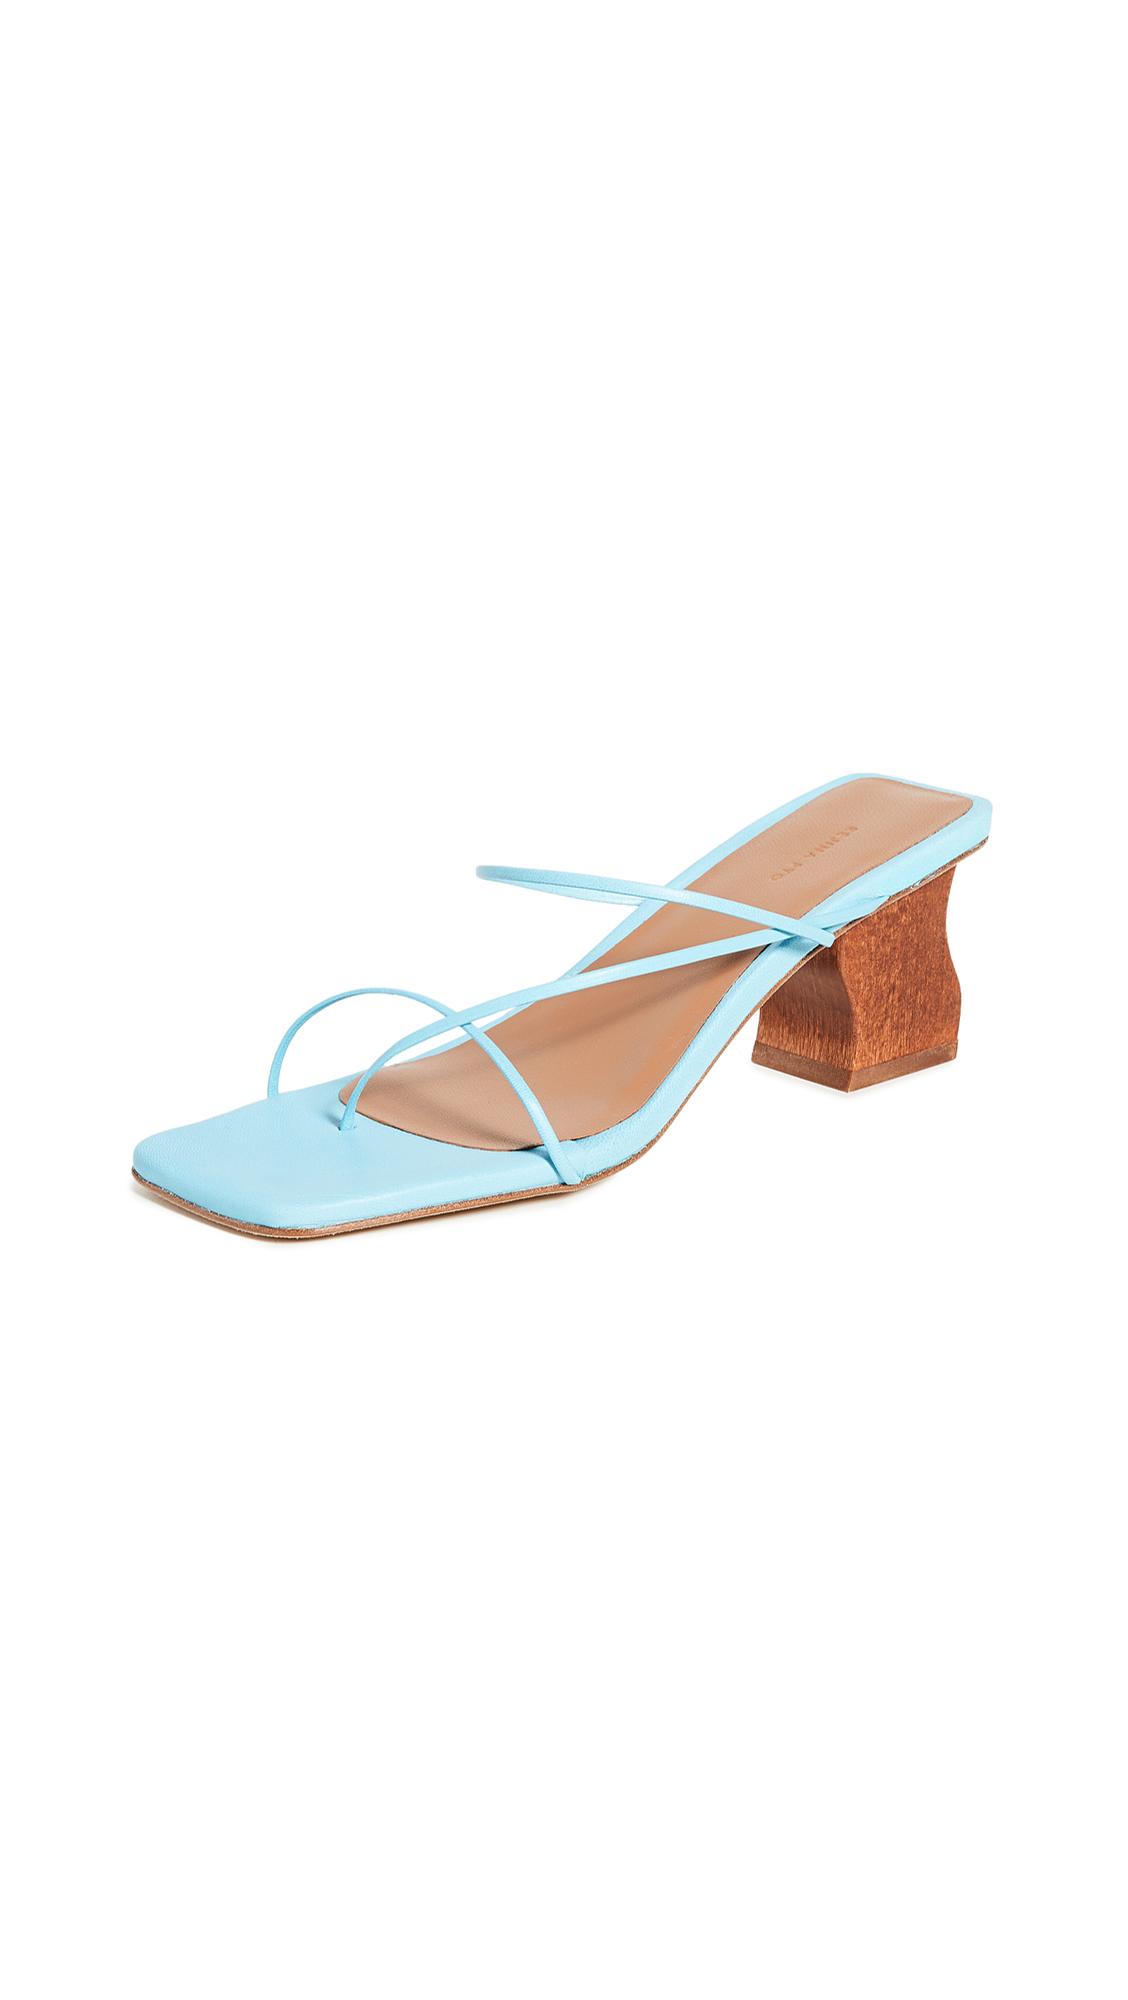 Rejina Pyo Wave Harley Sandals 60mm - 30% Off Sale